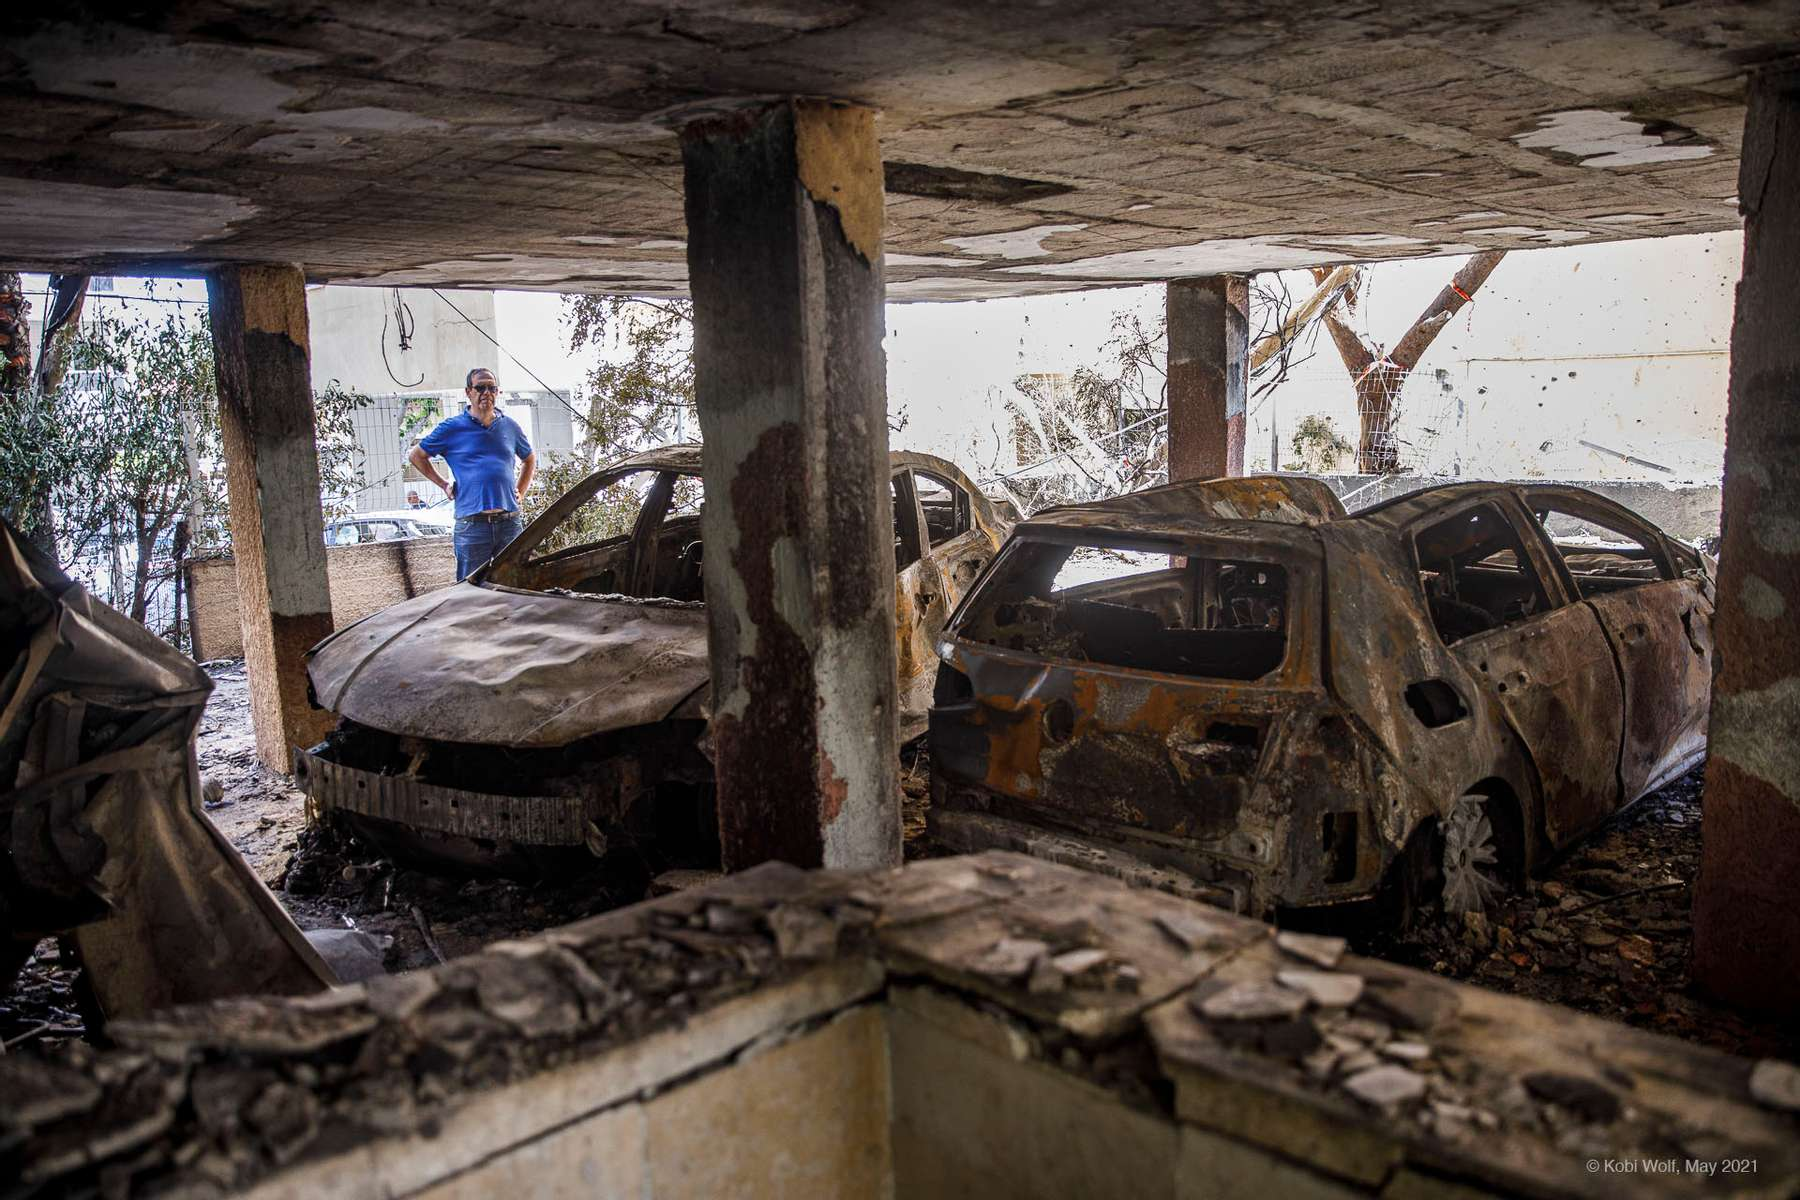 the damage of apartment after being hit by a rocket fired from the Gaza Strip over night, in Petah Tikva, central Israel, Thursday, May 13, 2021photographer: Kobi Wolf